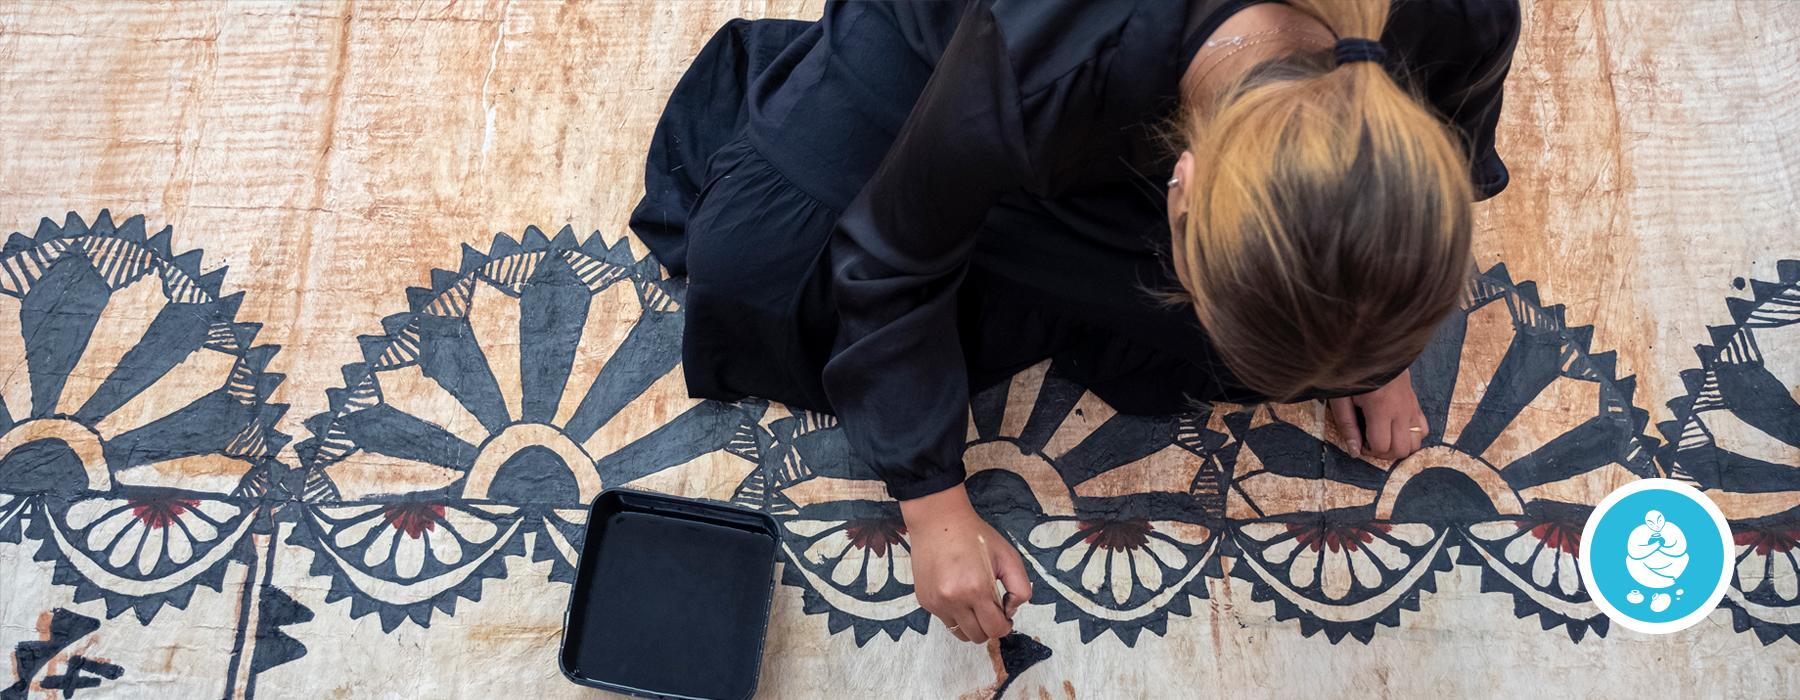 A woman crouched on a tapa cloth, painting with black paint